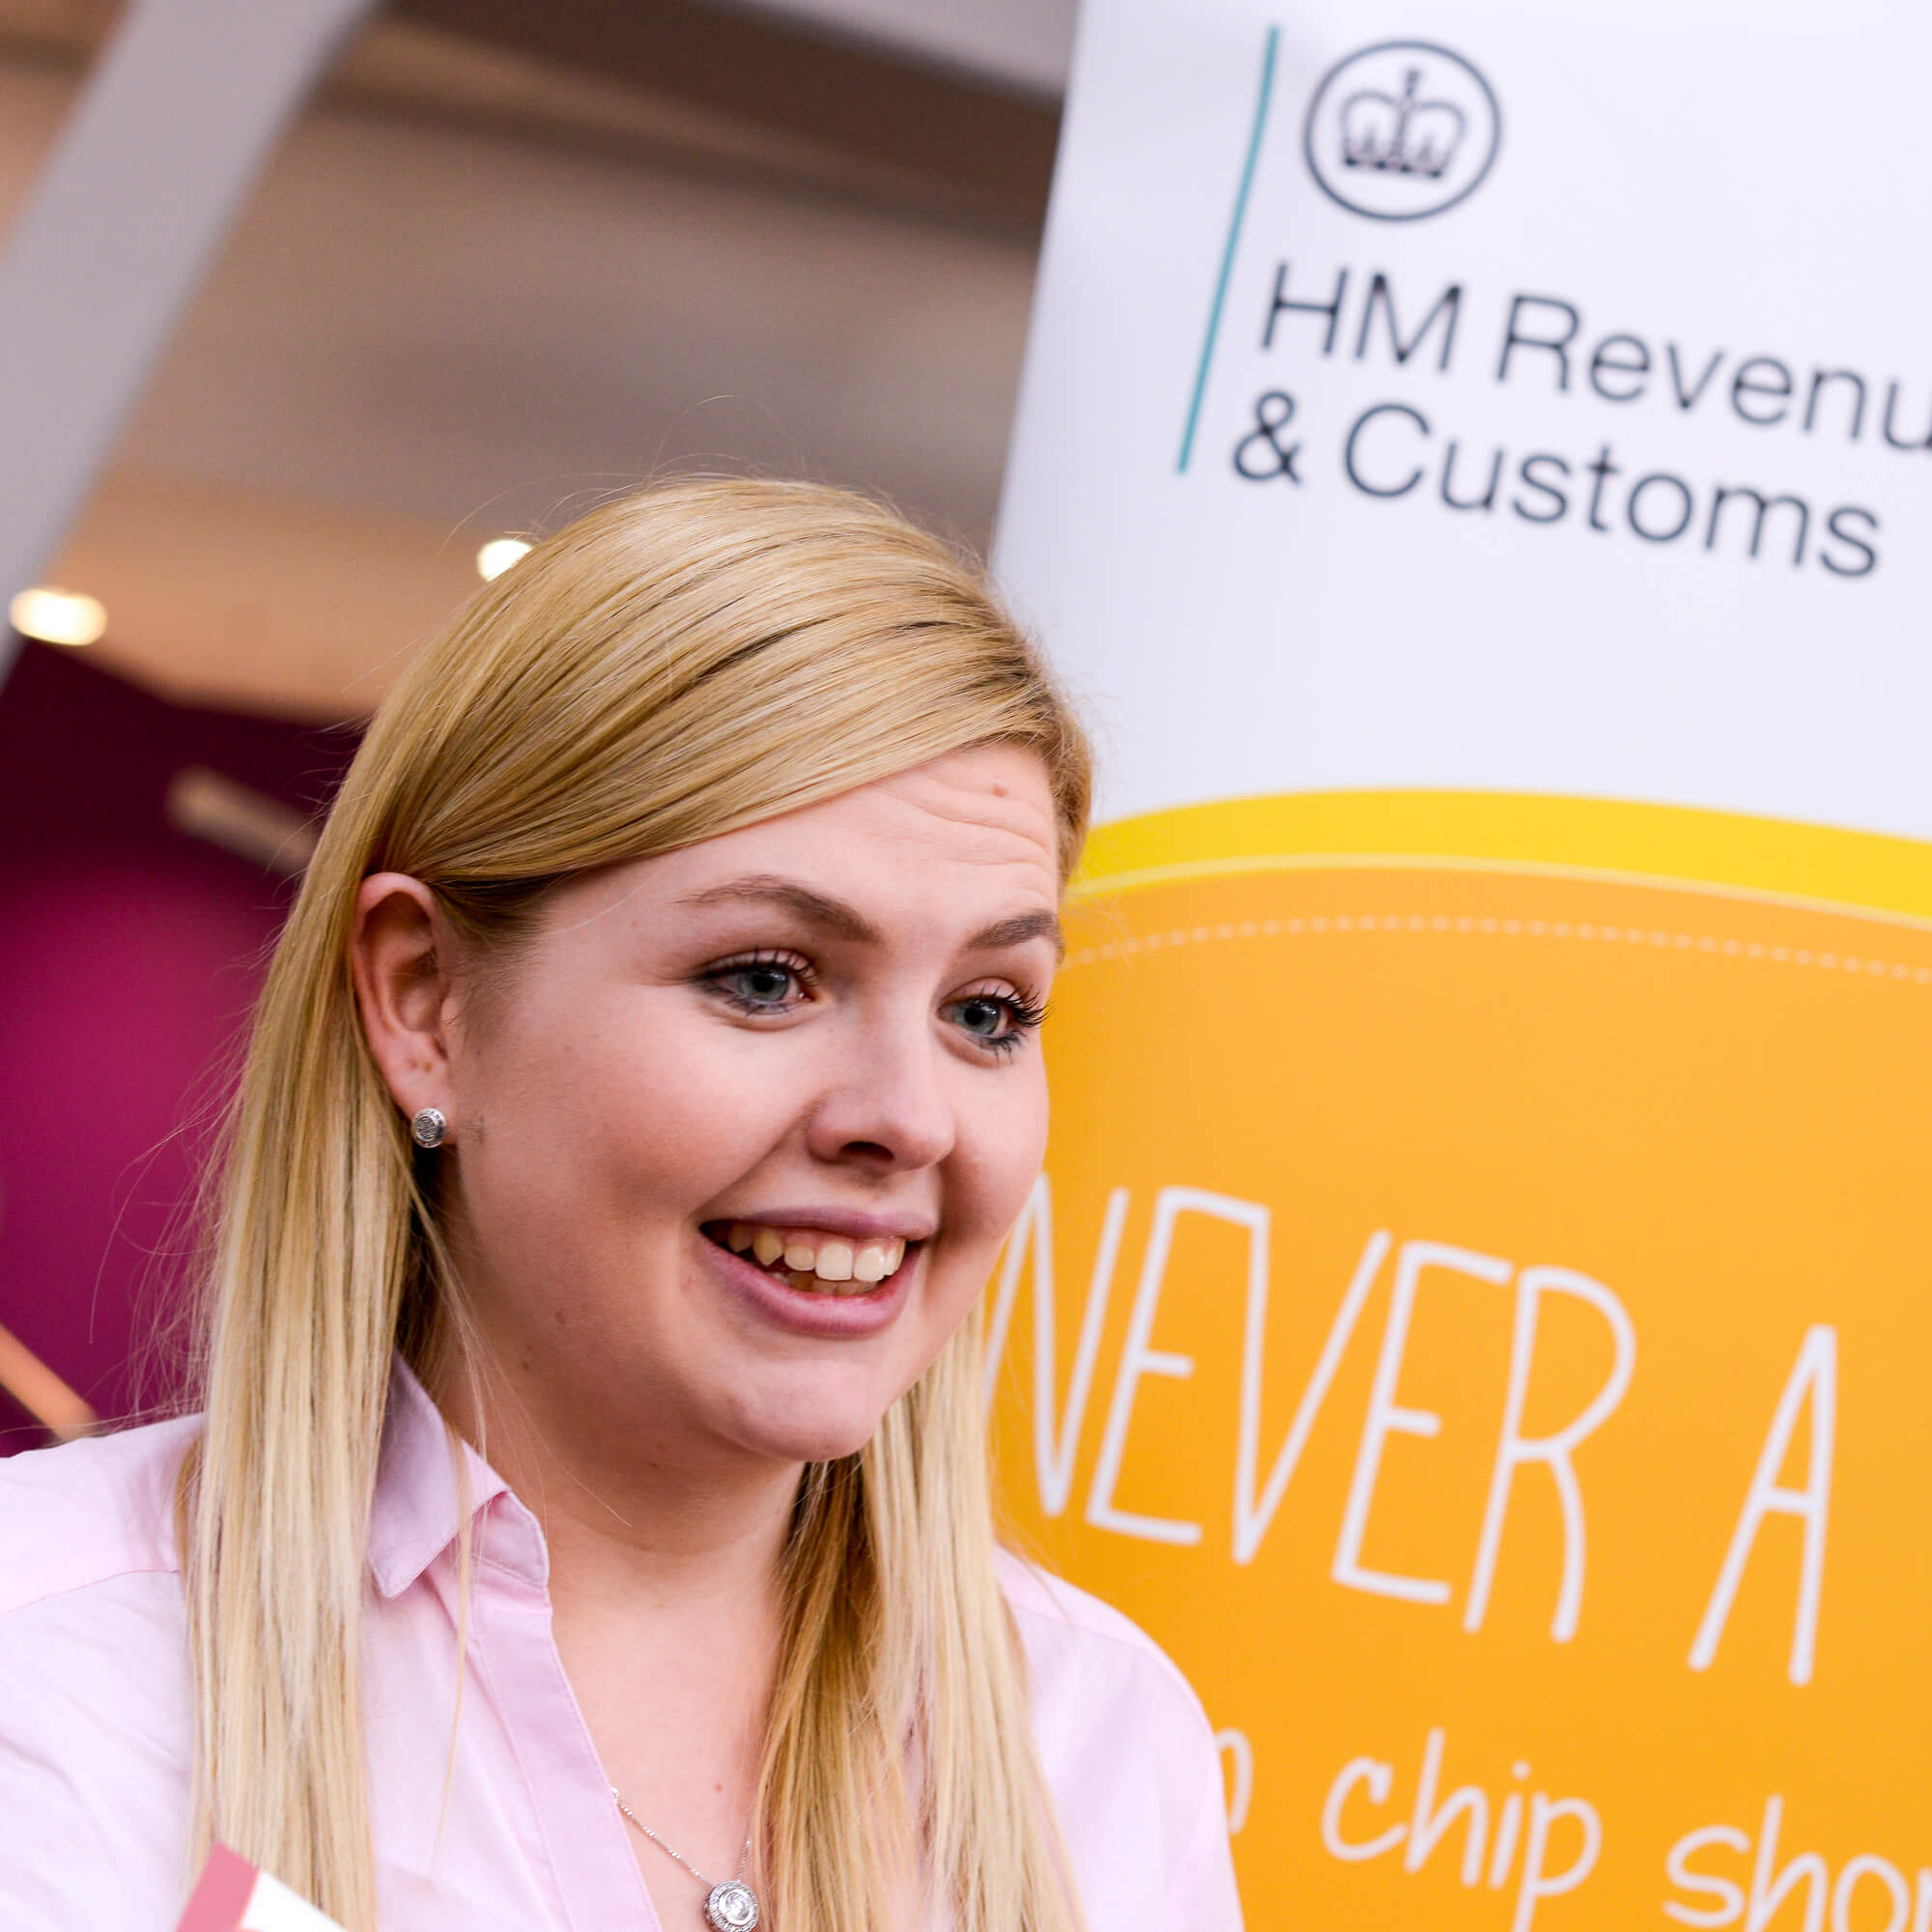 Employee talking in front of business stand at event